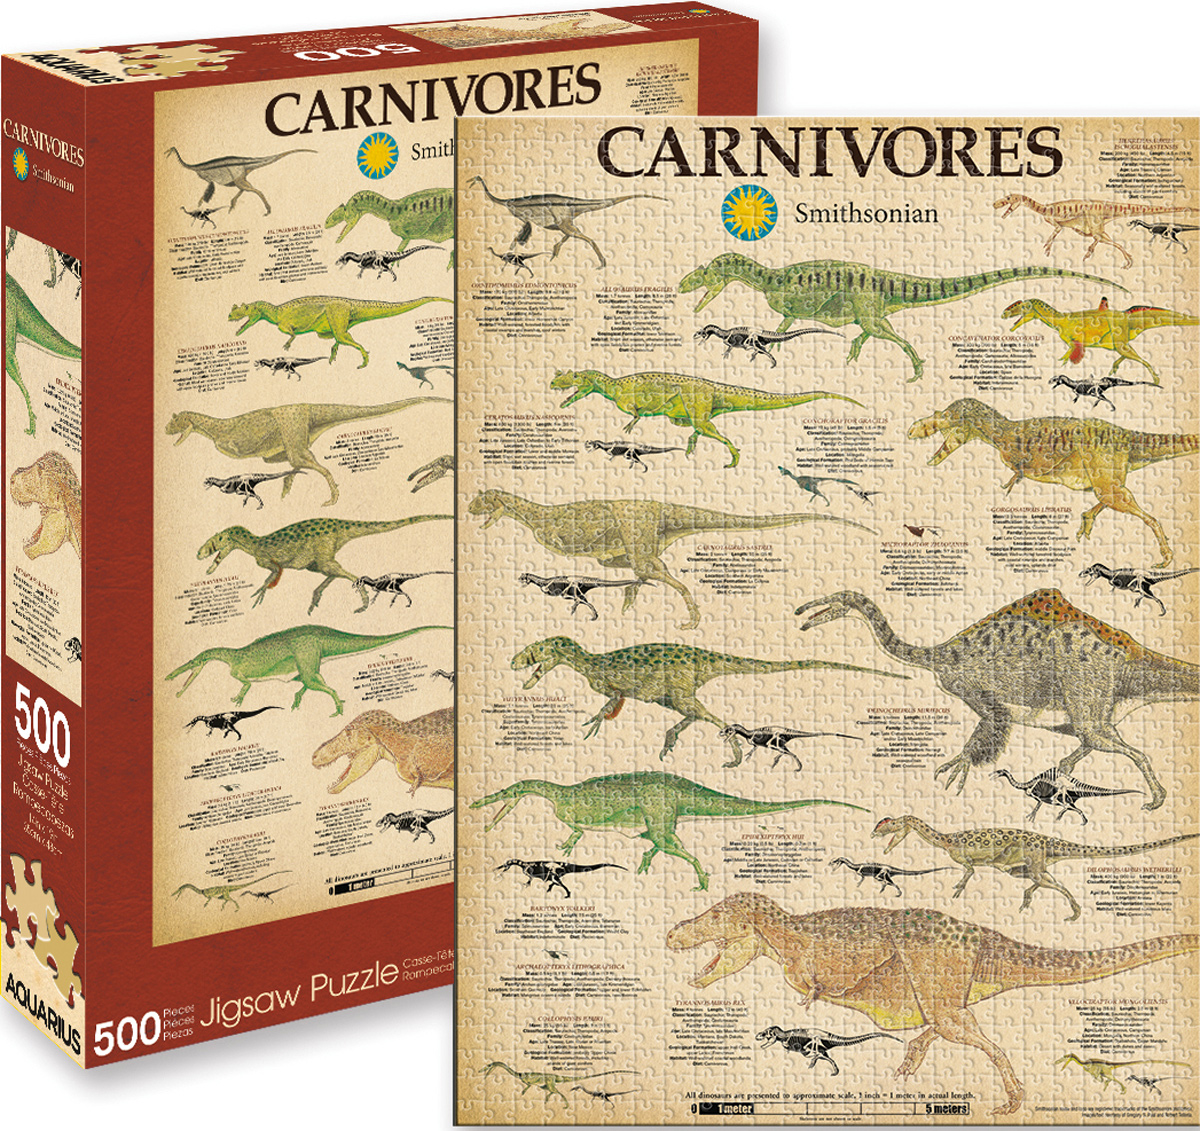 Smithsonian Carnivores Dinosaurs Jigsaw Puzzle